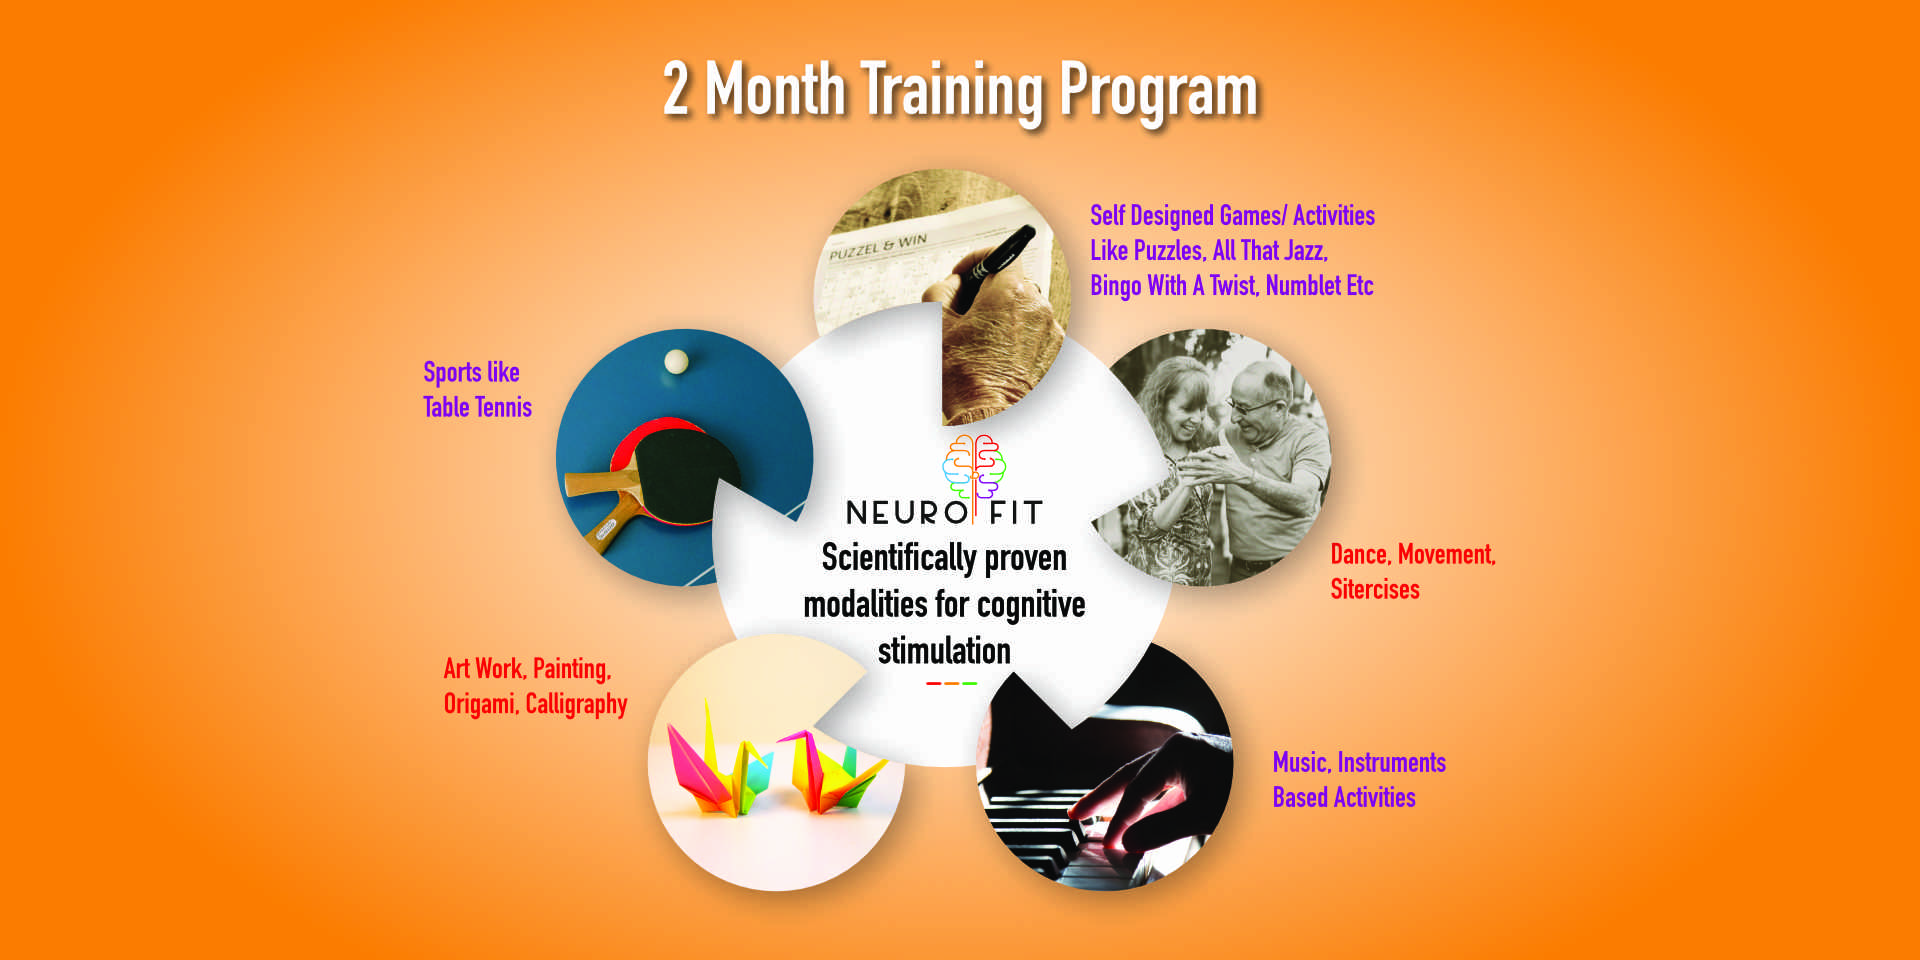 B. Neurofit's 2 month training program